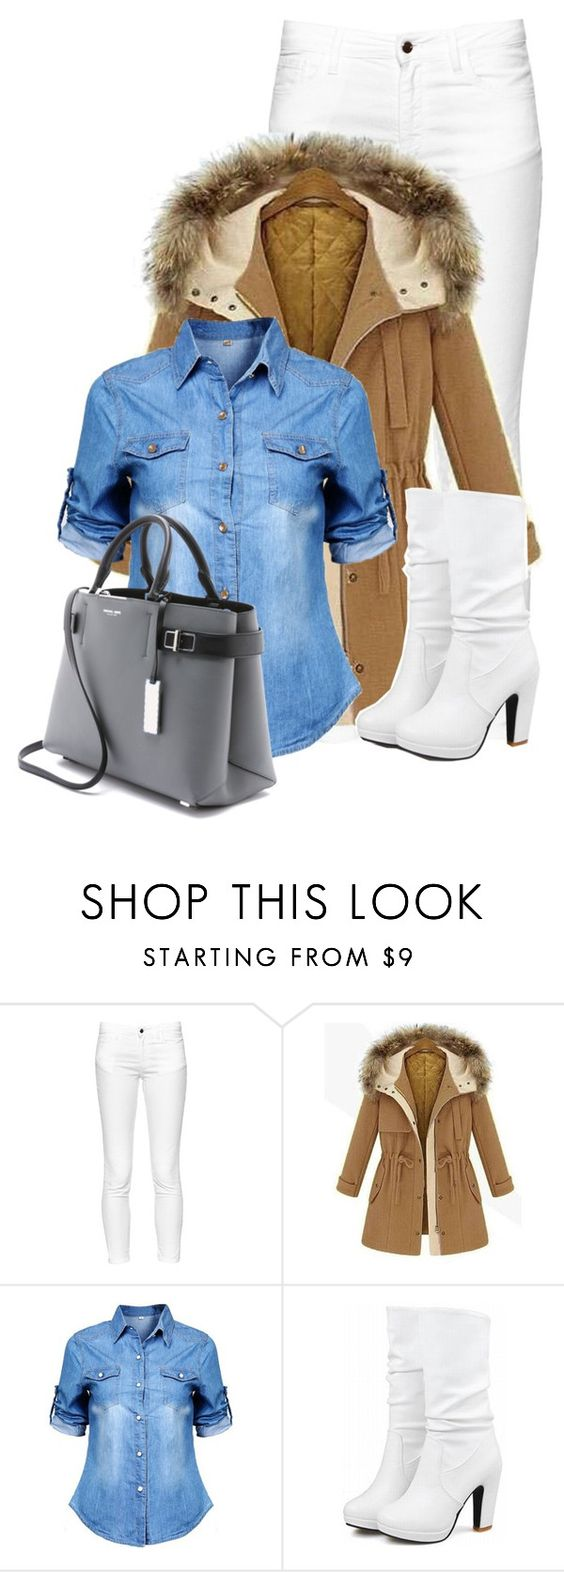 """Untitled #11850"" by nanette-253 ❤ liked on Polyvore featuring French Connection and Michael Kors"